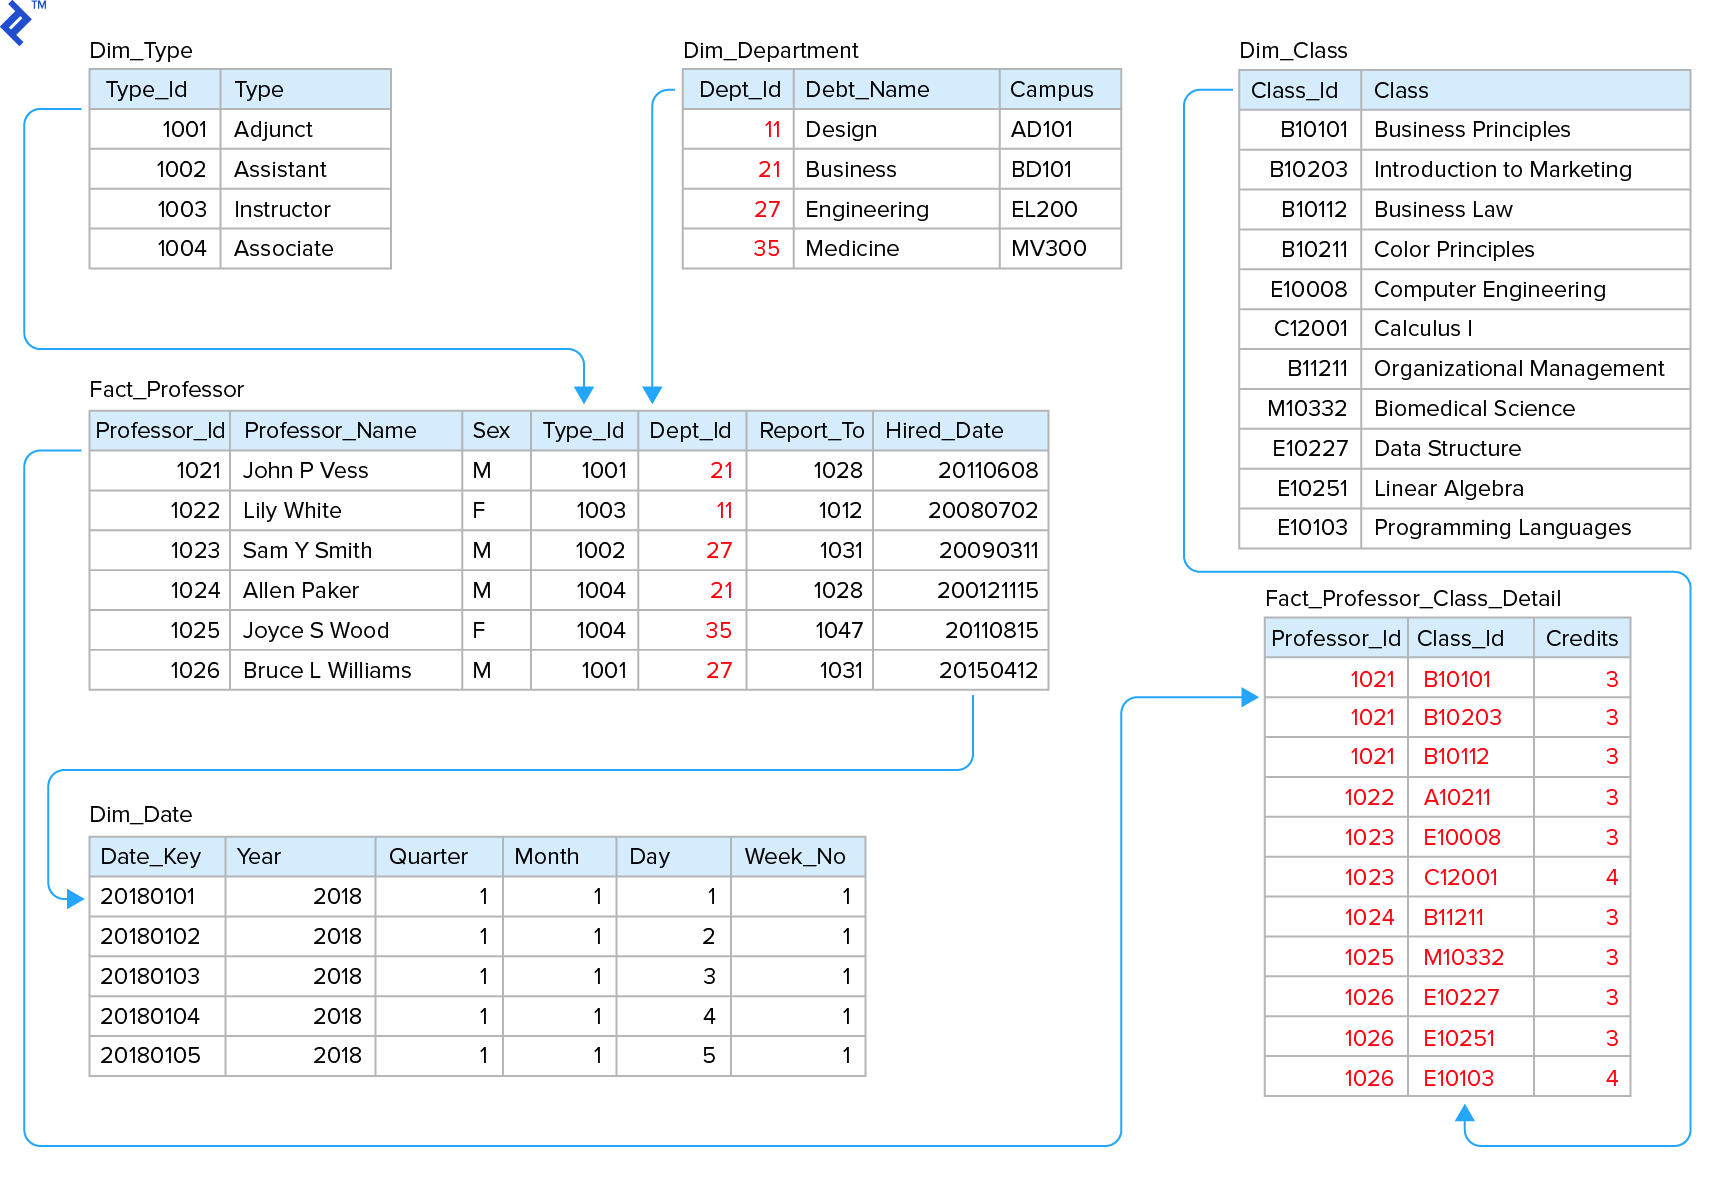 Star schema example, with tables Dim_Type, Dim_Department, Dim_Class, Fact_professor, Dim_Date, and Fact_Professor_Class_Detail.